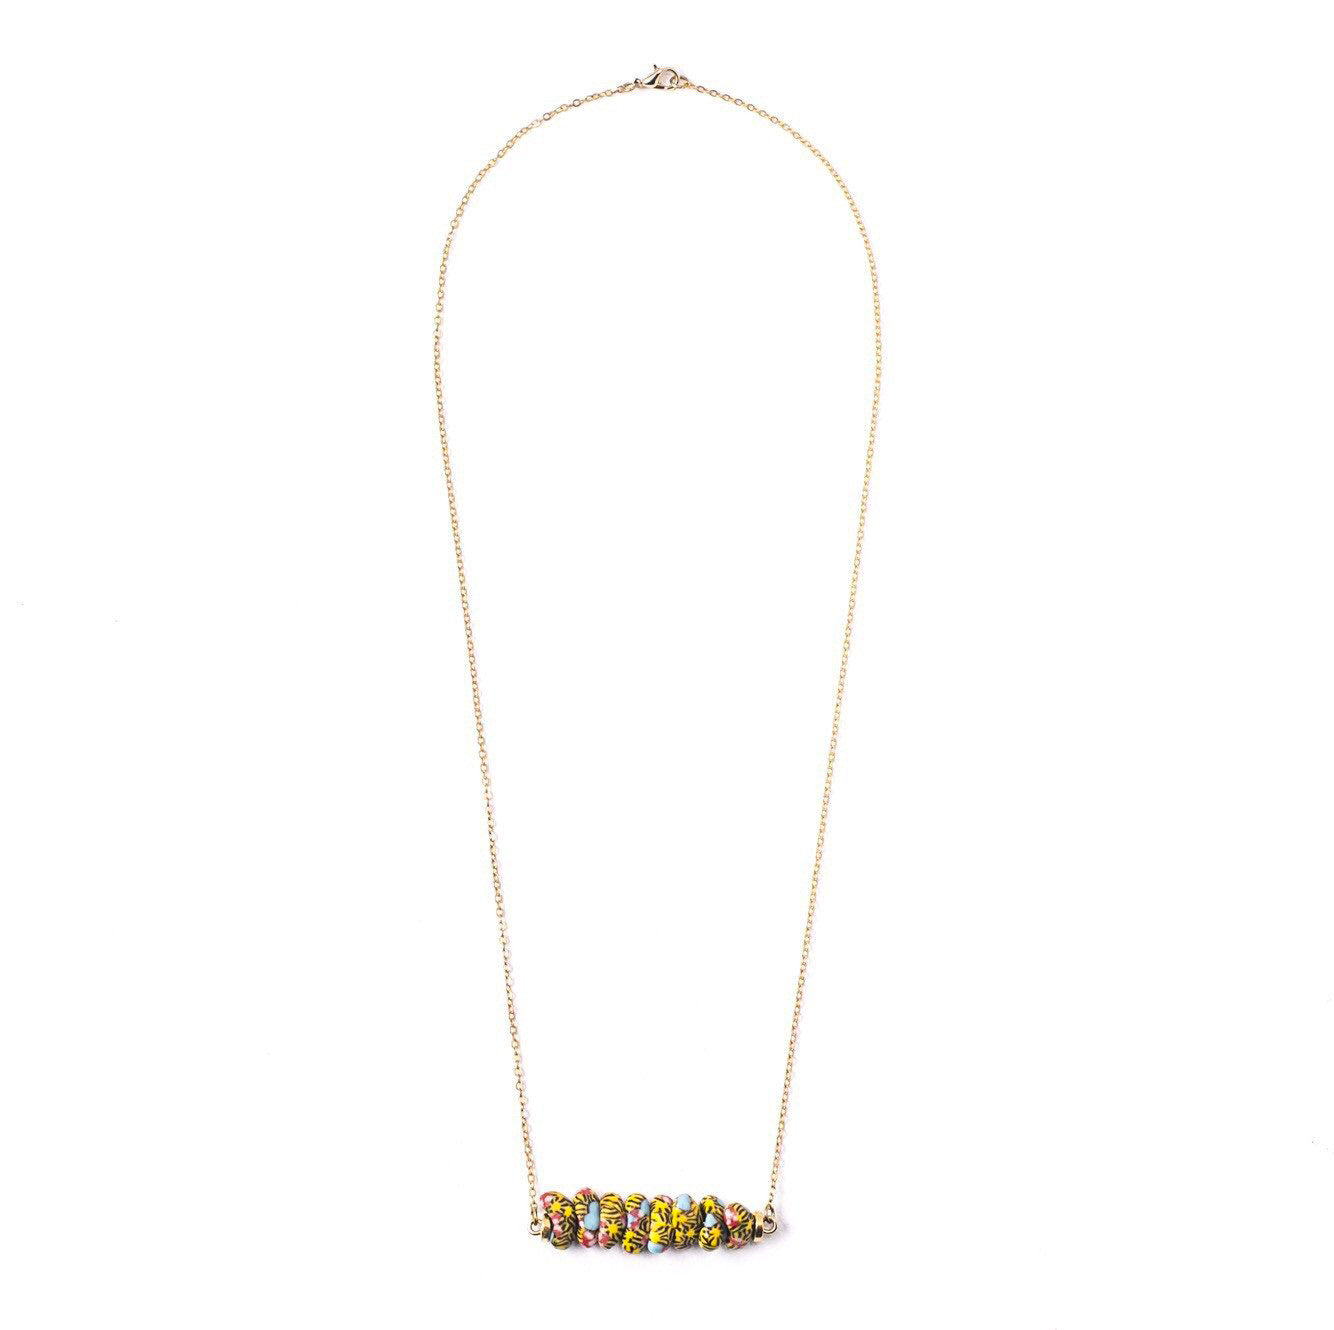 Flo bar Necklace